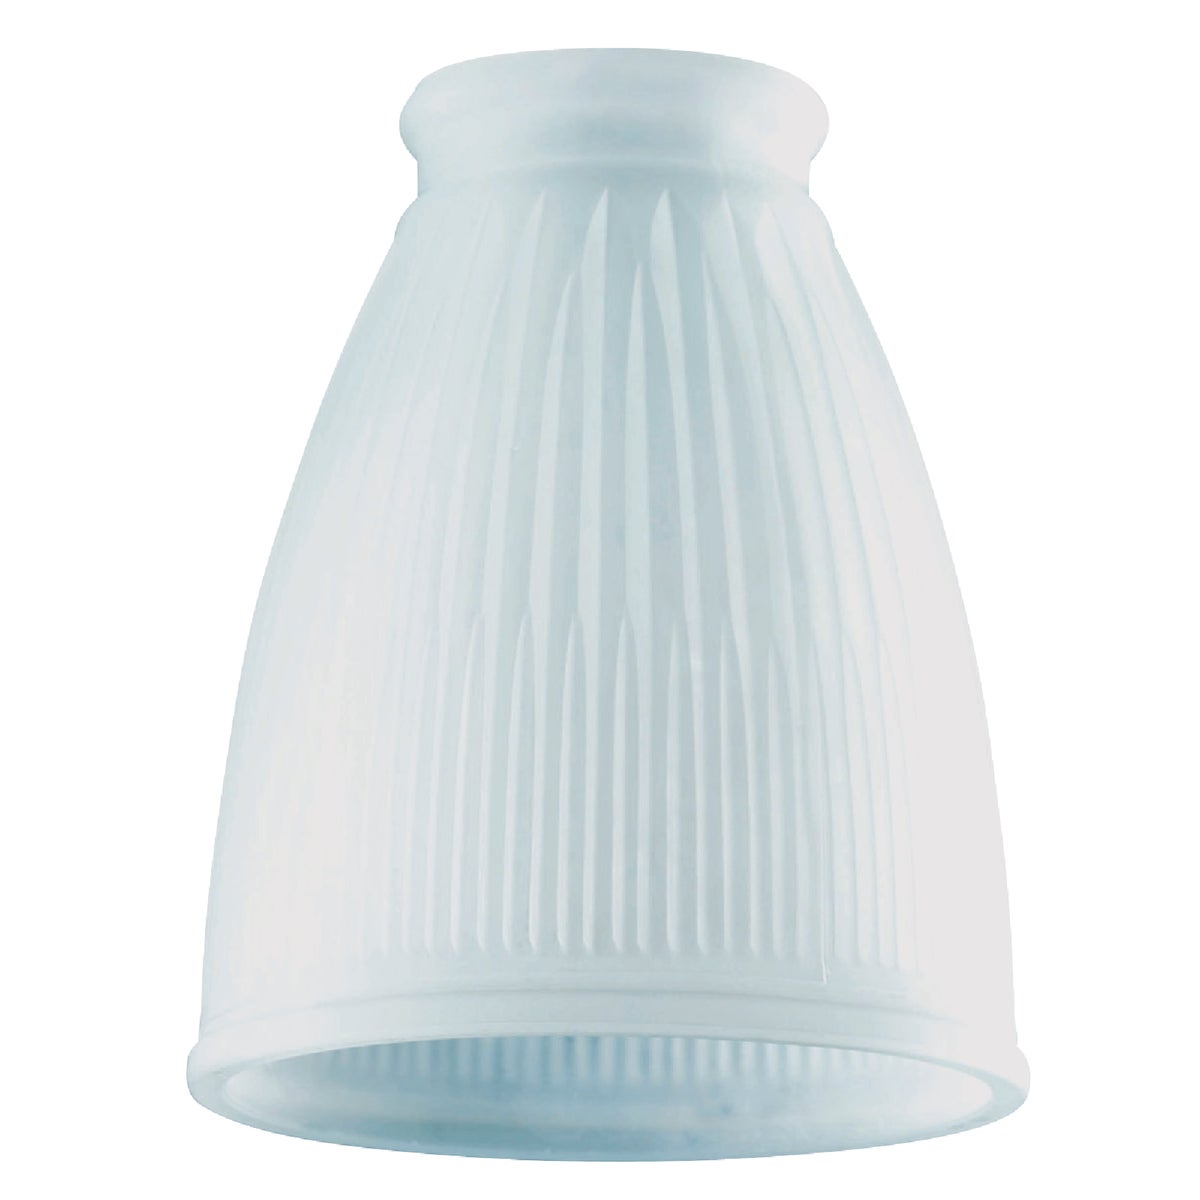 FROST PLEAT GLASS SHADE